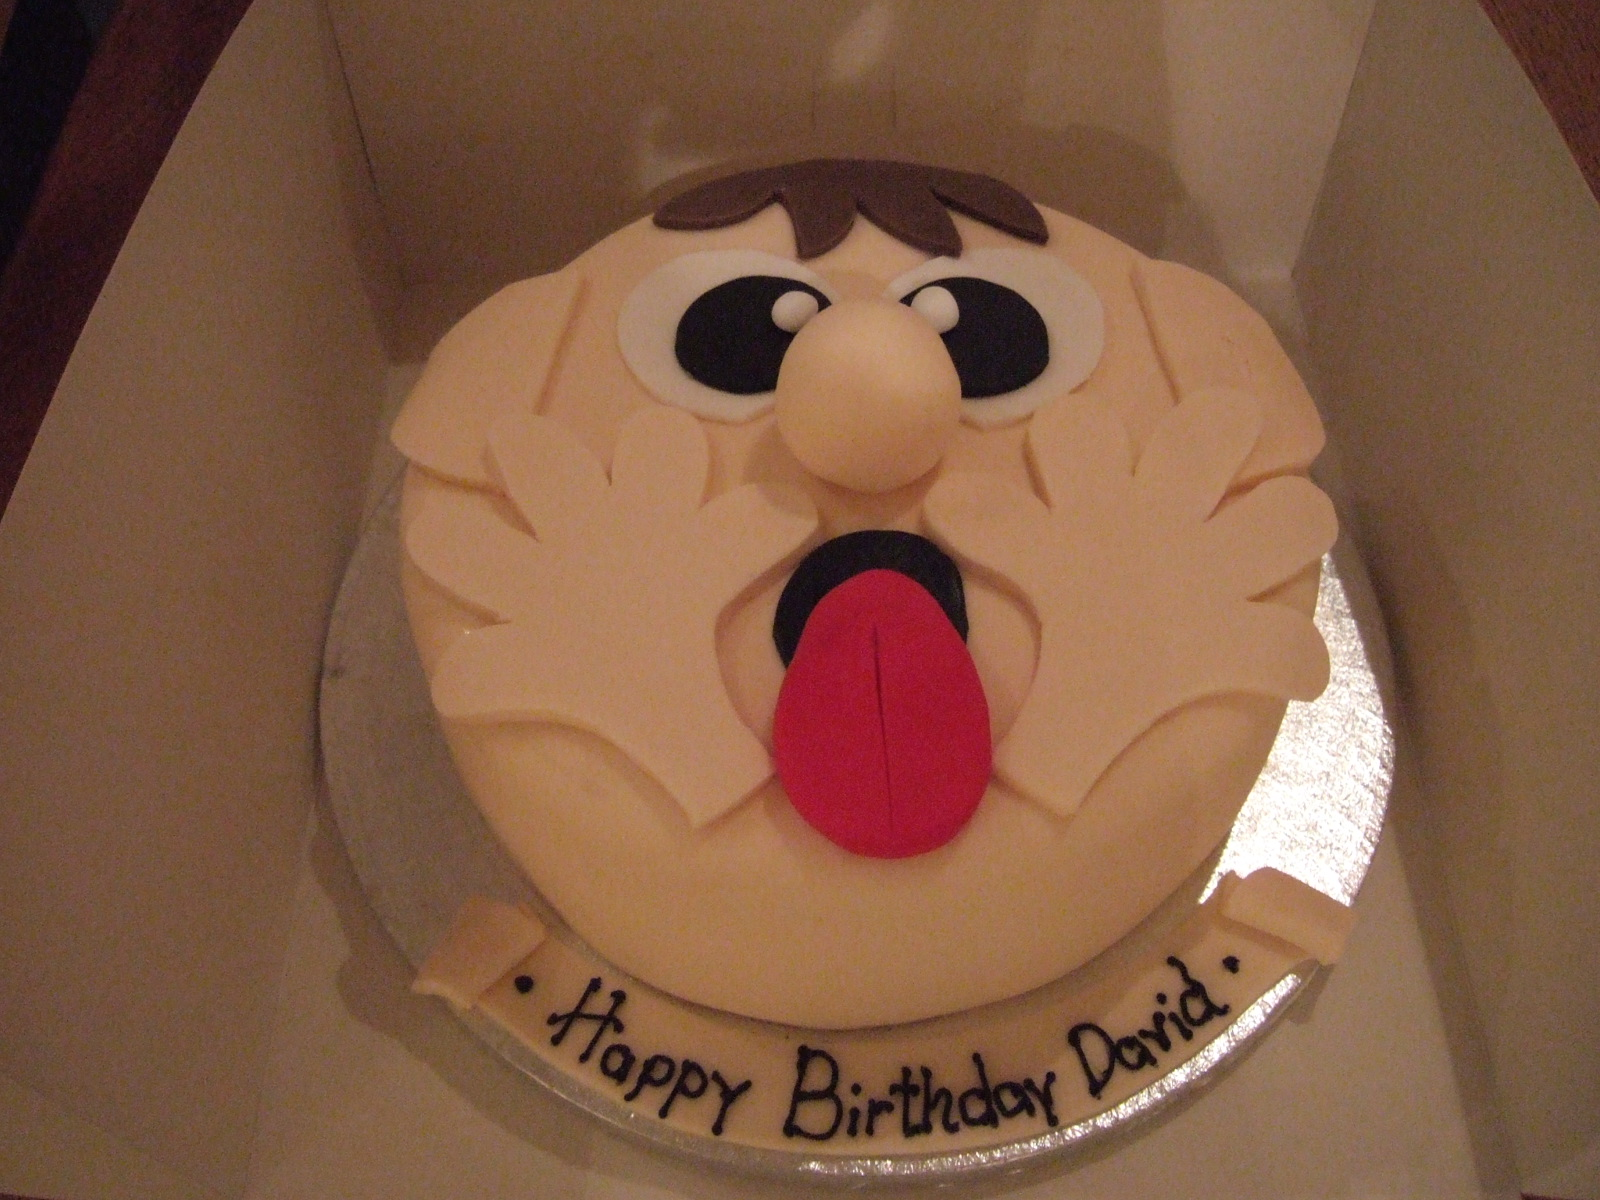 World Beautiful Cake Images : Order your birthday cake from ARLO!